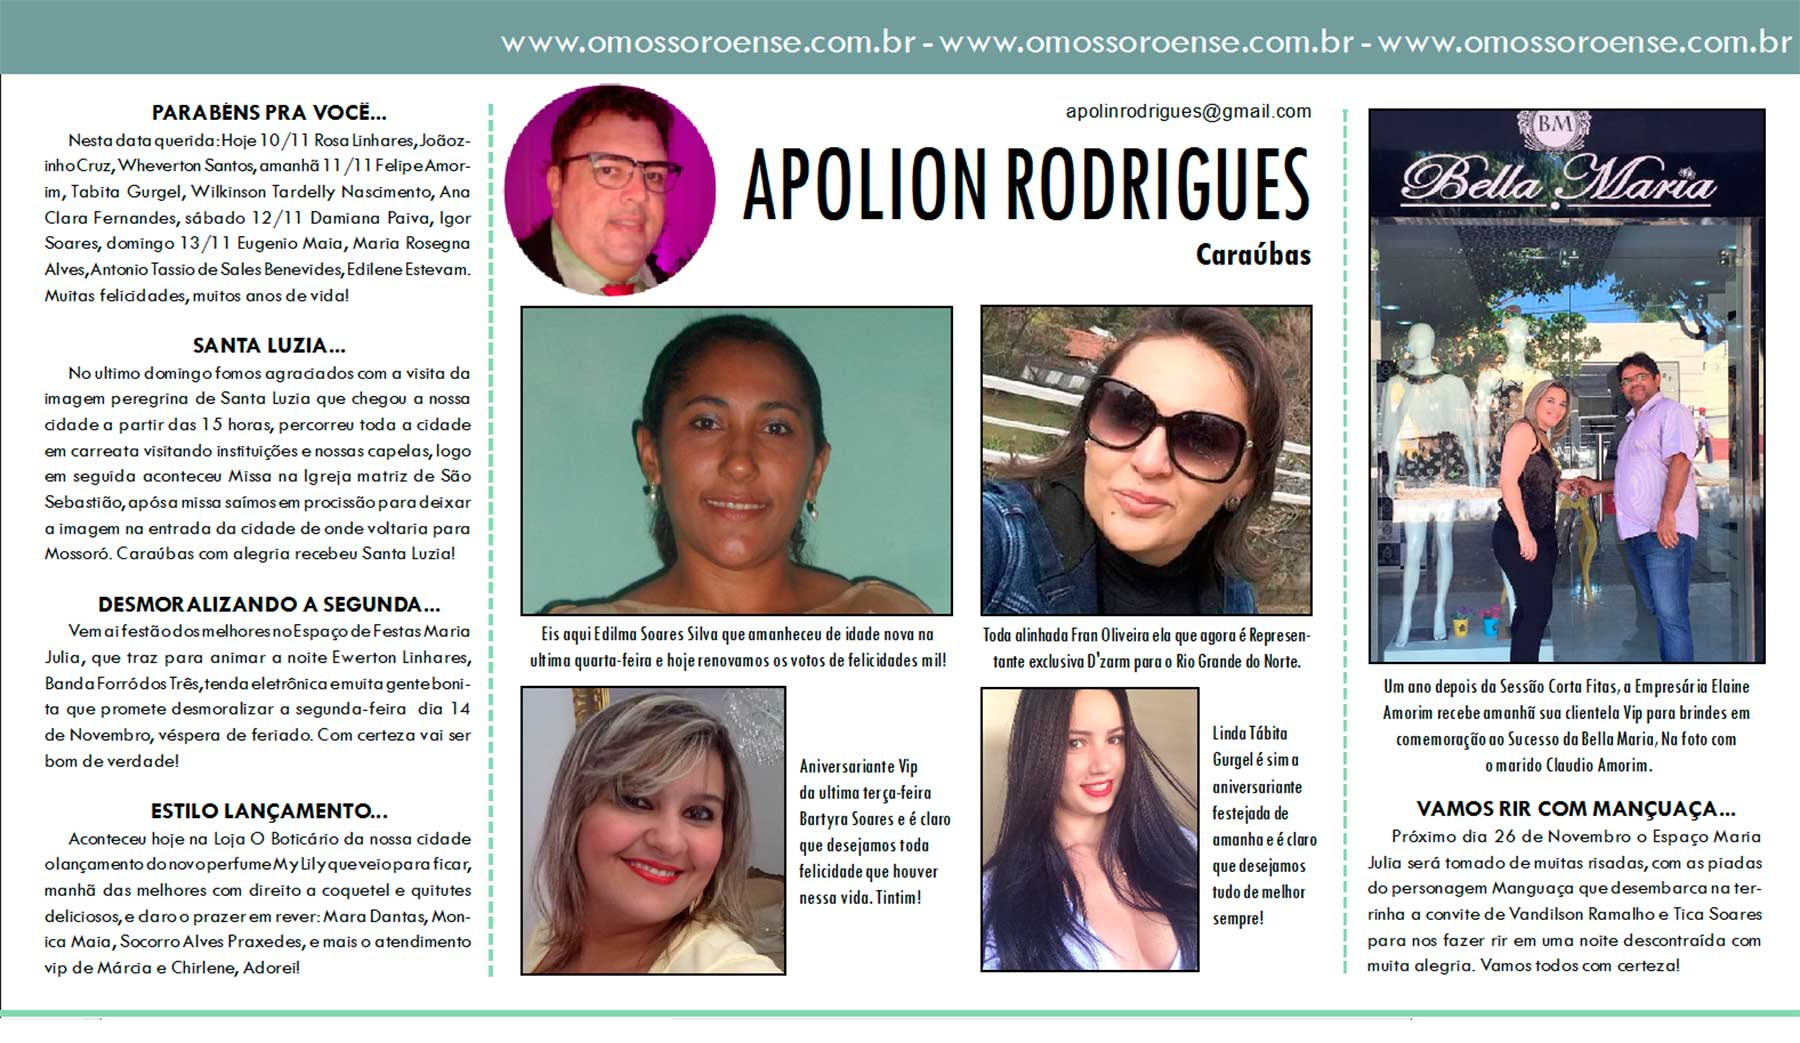 apolion-rodrigues-10-11-2016